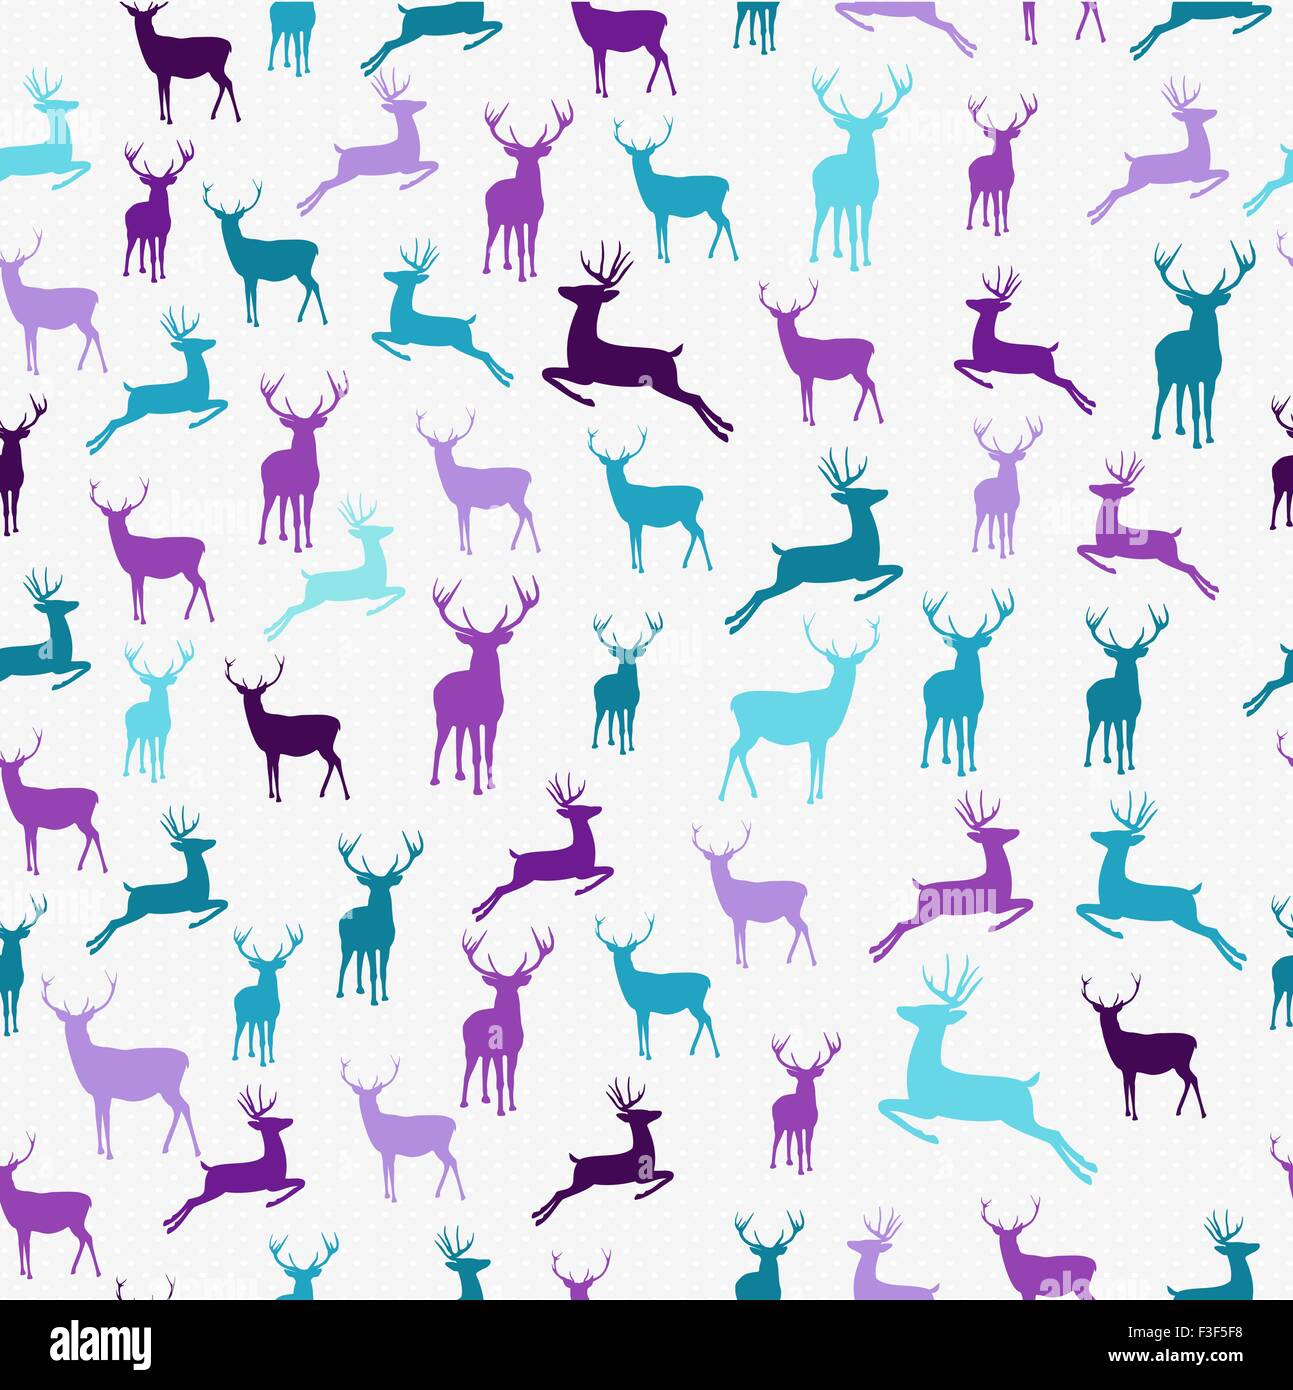 Merry Christmas Hipster Reindeer Seamless Pattern Background Ideal For Holiday Greeting Card Wrapping Paper Or Xmas Campaign